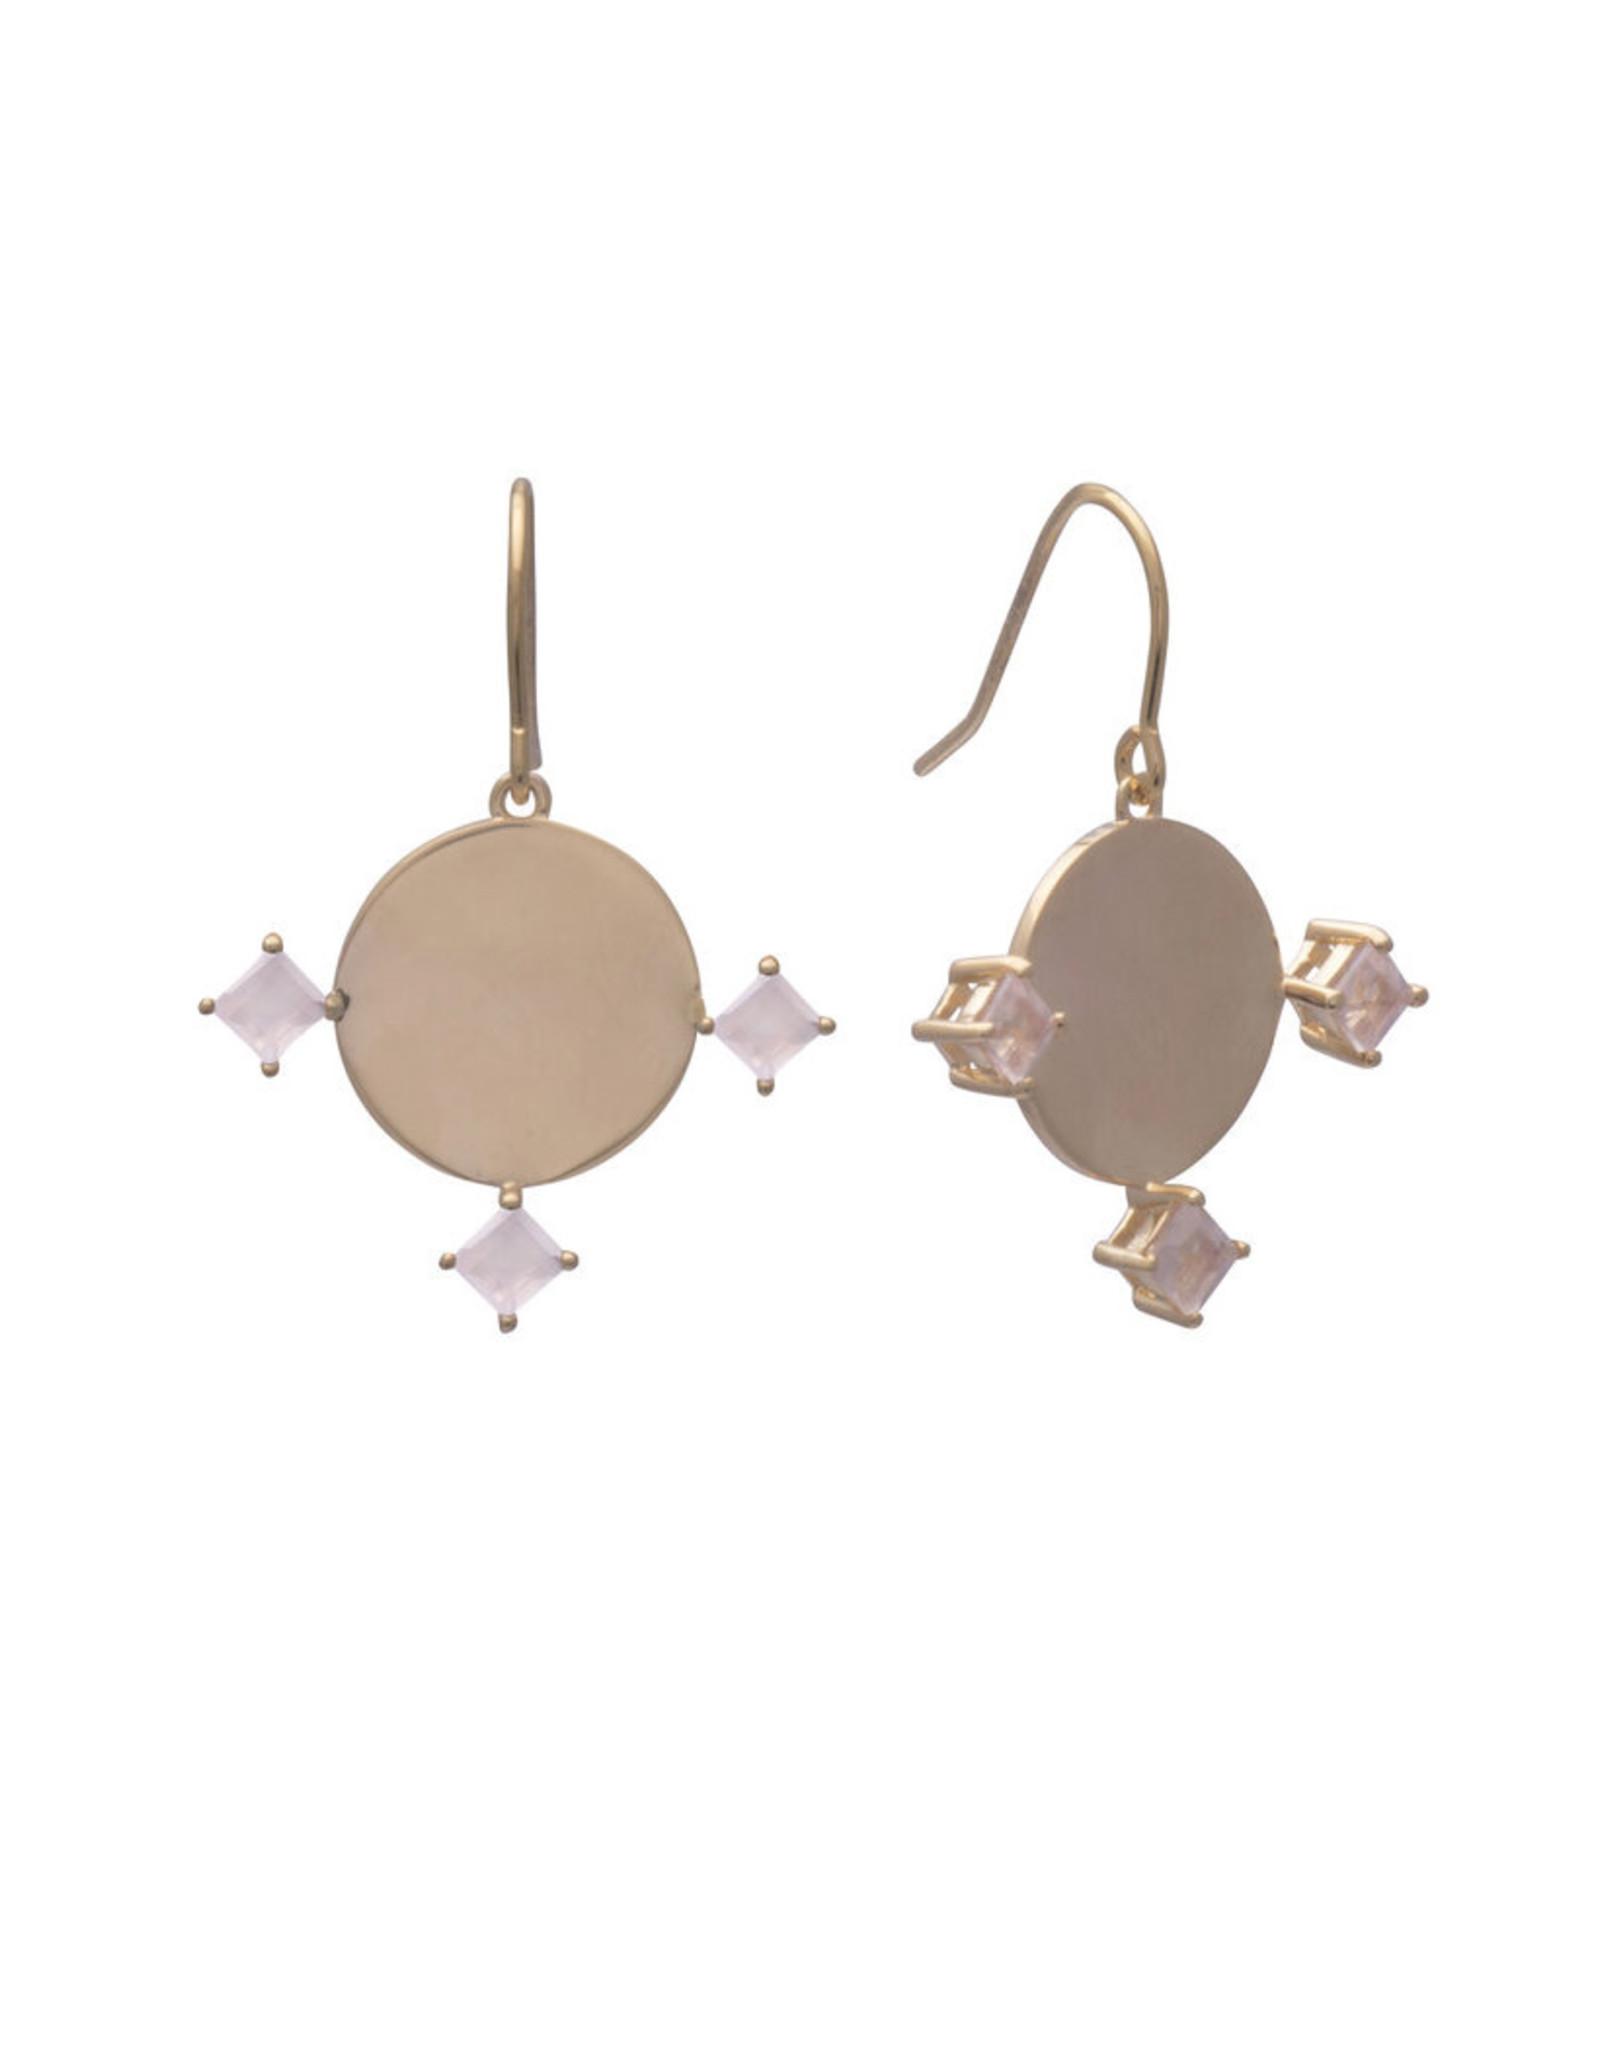 Sarah Mulder Jewelry Gold Imperial Earrings - Rose Quartz